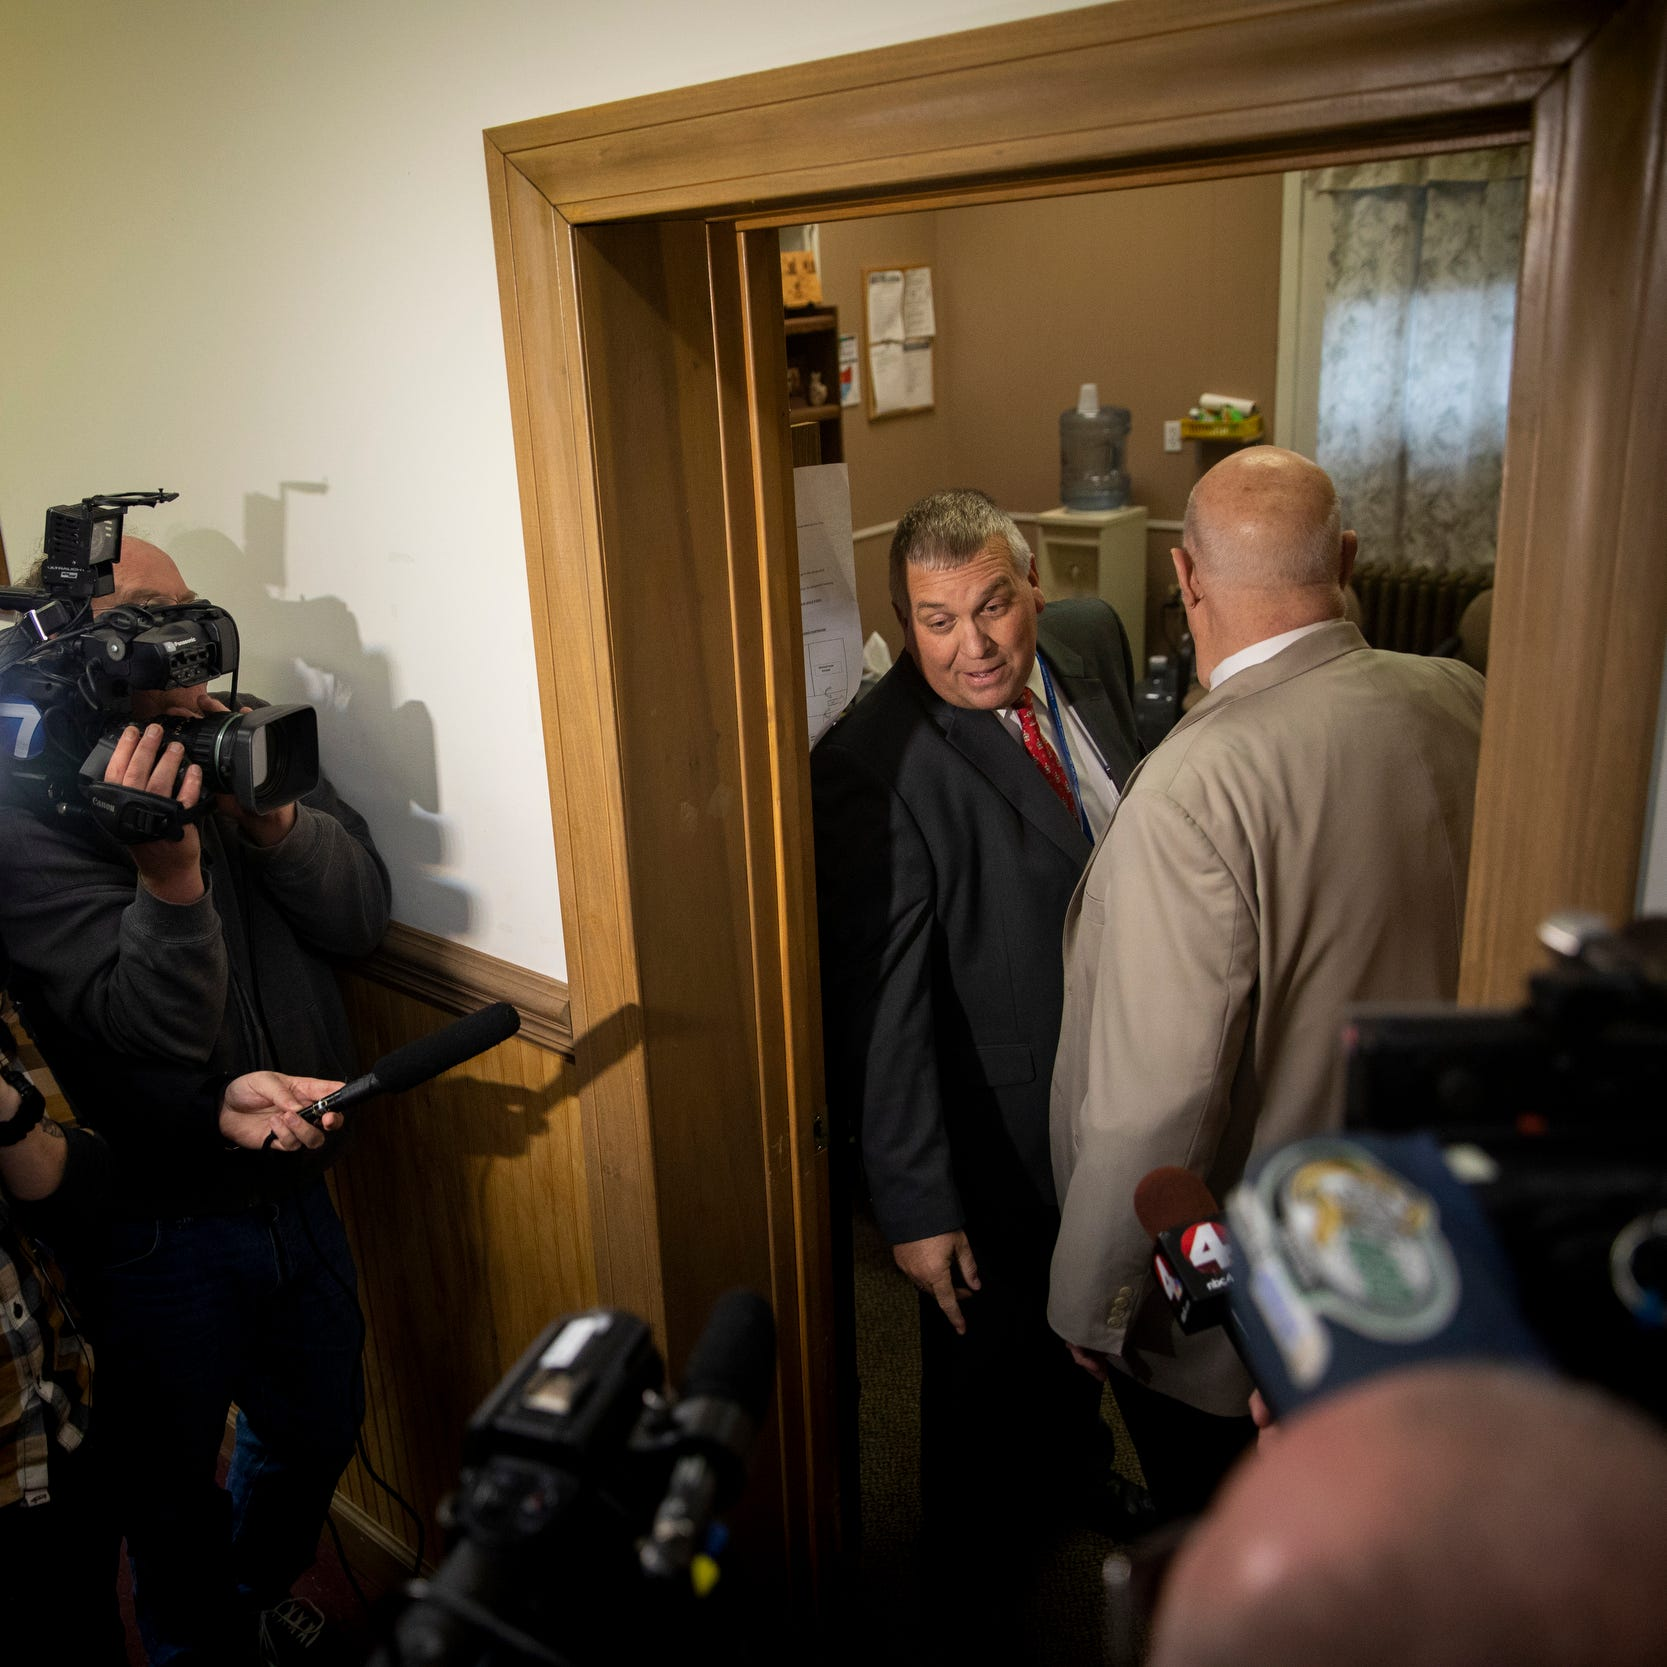 """Pike County Prosecutor Rob Junk declines to make a comment to the media after the arraignment of Fredericka Wagner and Rita Newcomb at the Pike County Courthouse Thursday, November 15, 2018 in Waverly, Ohio. Fredericka Wagner, 76 of Lucasville, and Rita Newcomb, 65, of South Webster, are accused of perjury and obstructing justice for allegedly misleading investigators.  Newcomb also is charged with forging custody documents to cover up the crimes. The women are mothers of Angela Wagner and George """"Billy"""" Wagner and grandmothers of the Wagners' two sons, George Wagner IV and Edward """"Jake"""" Wagner, who are facing murder charges in the deaths of the Rhoden family and Hannah Gilley.  The eight homicides took place in April 2016 at four different homes, all around the same time. It would spawn the largest homicide investigation in Ohio history."""